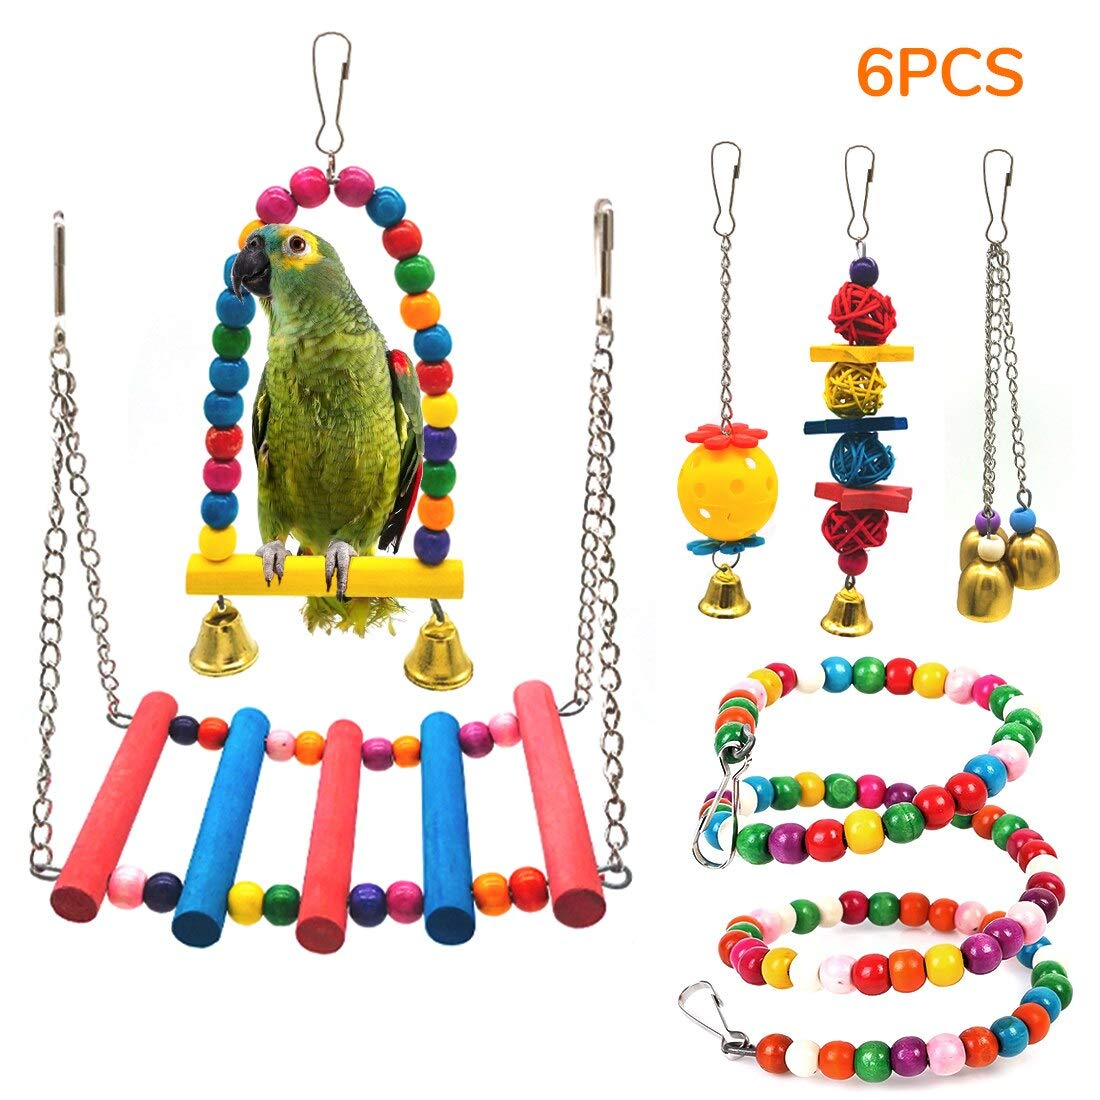 STARROAD-TIM Bird Toys Bird Parrot Swing Toy Pet Bird Cage Hammock Swing Toy Hanging Bell Beaks Toy for Small Budgie 6 pcs by STARROAD-TIM